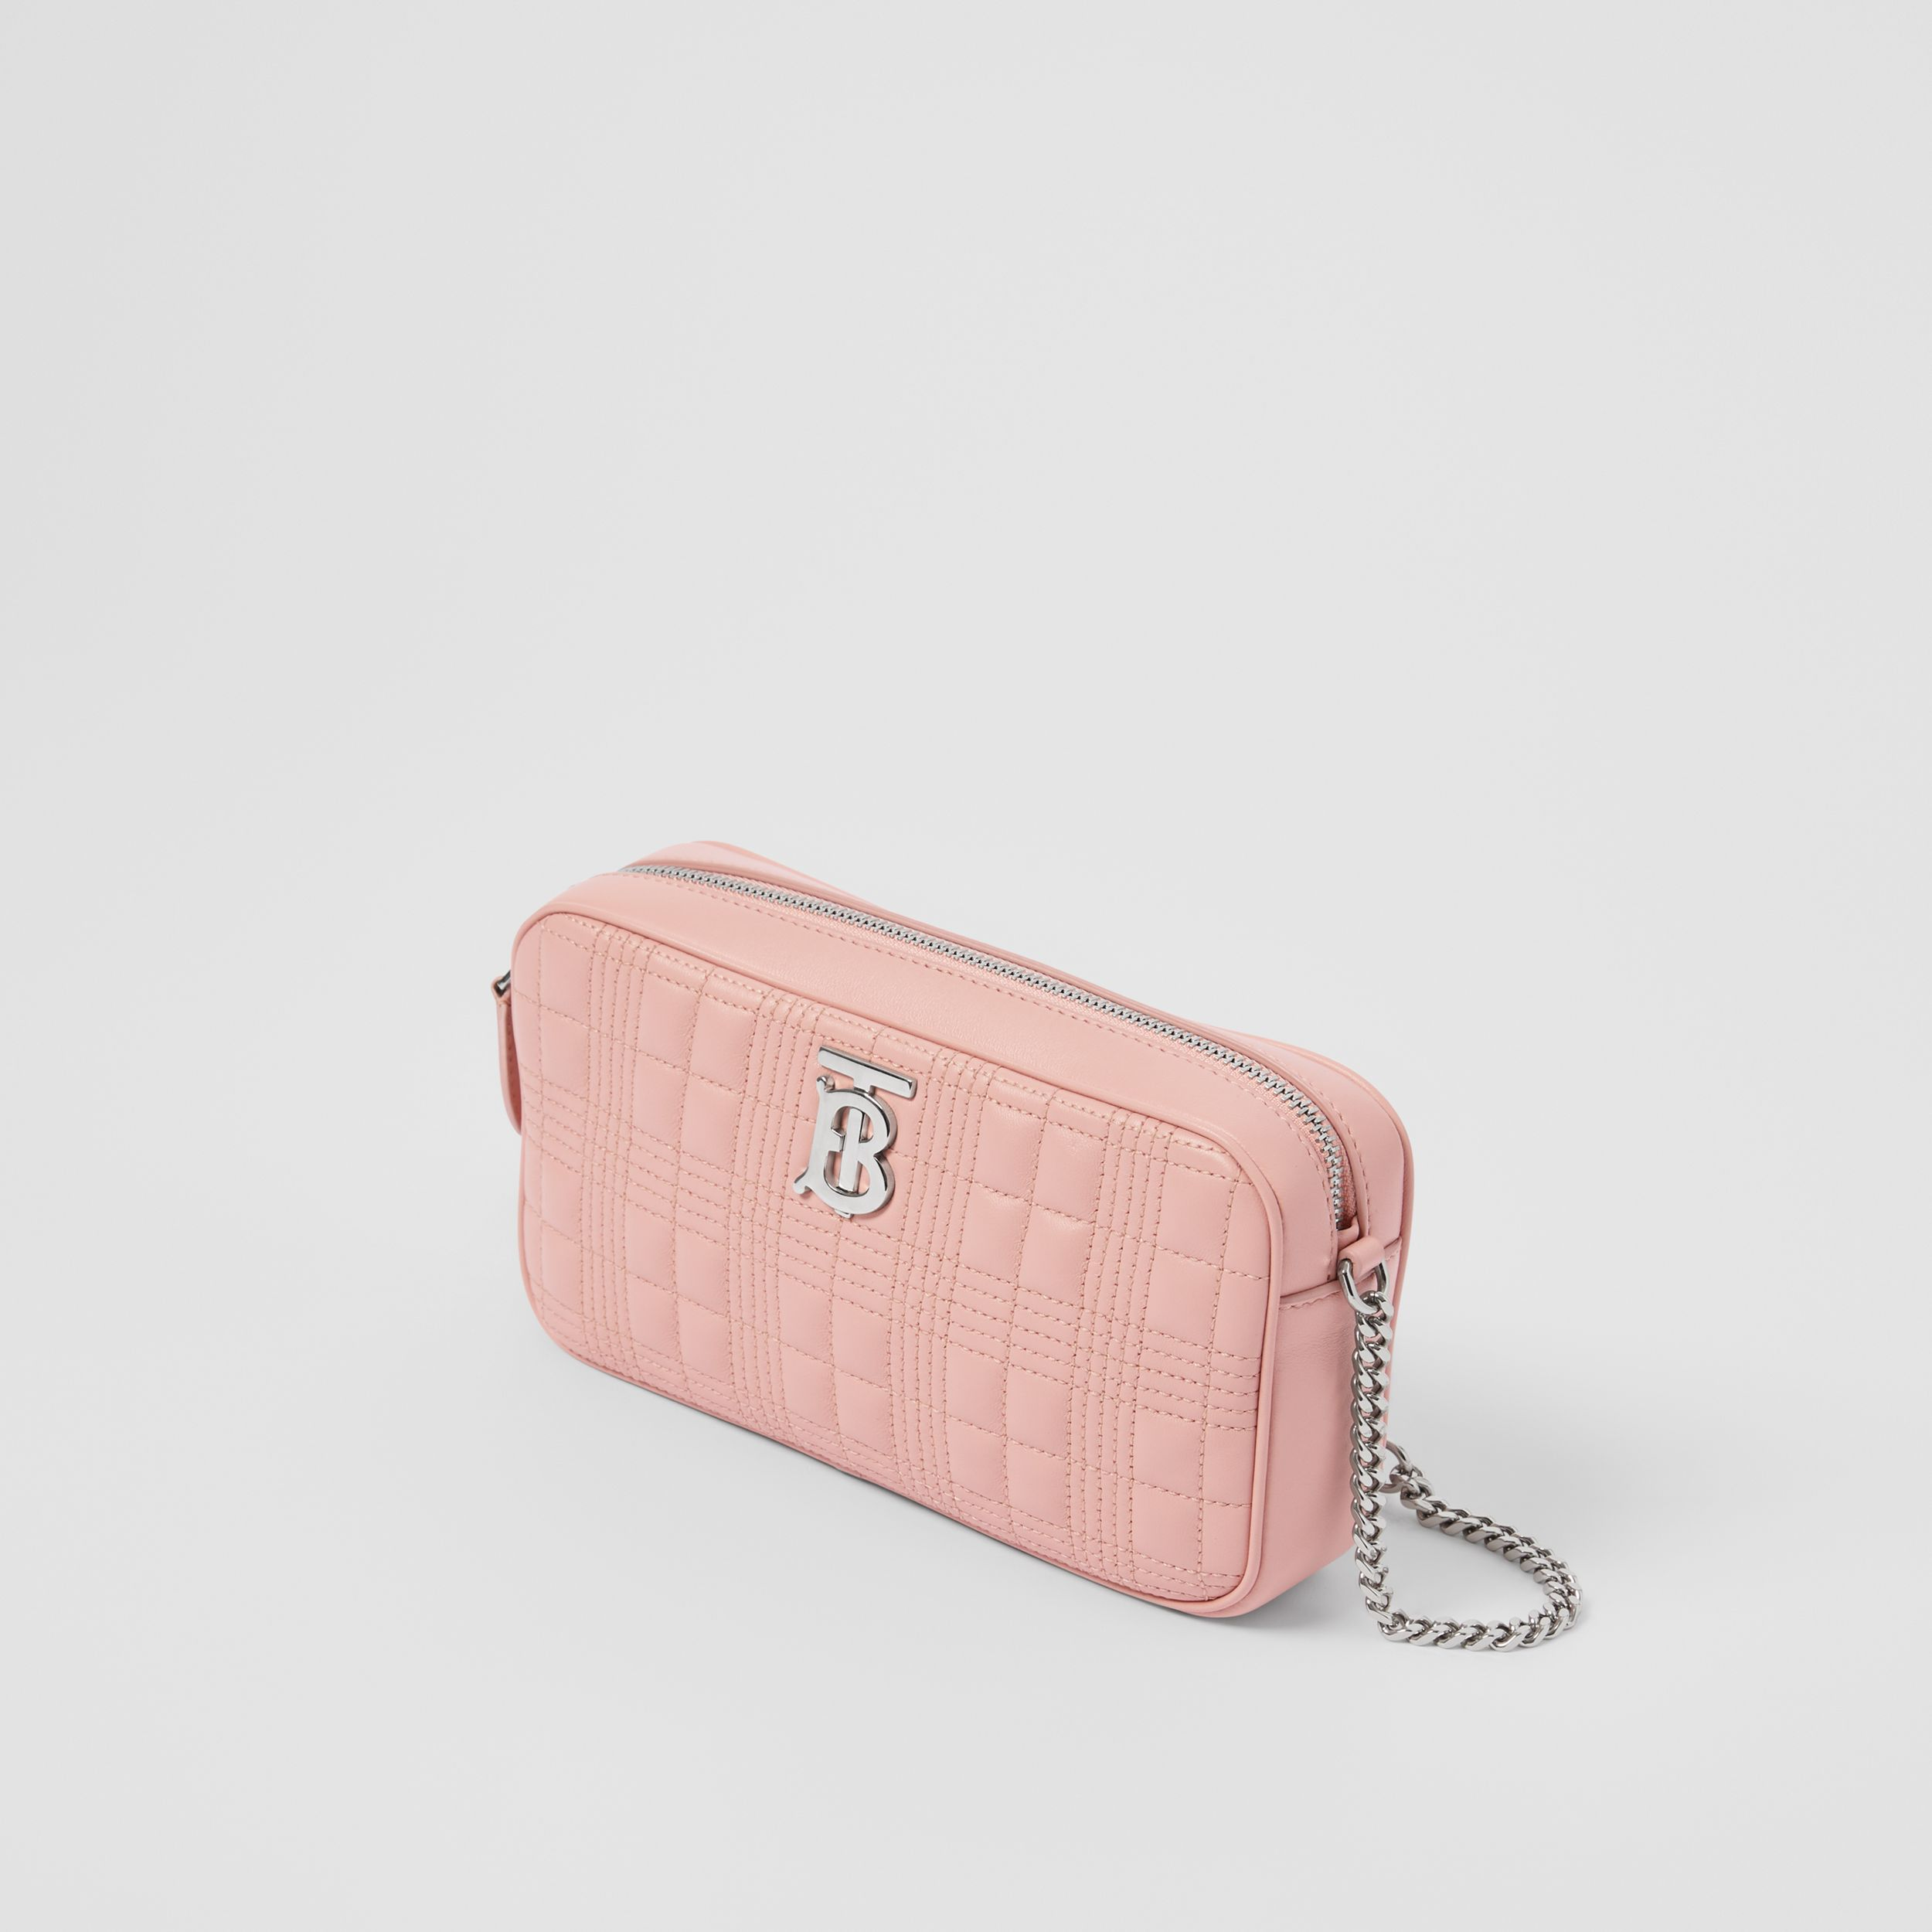 Quilted Lambskin Camera Bag in Blush Pink - Women | Burberry - 3